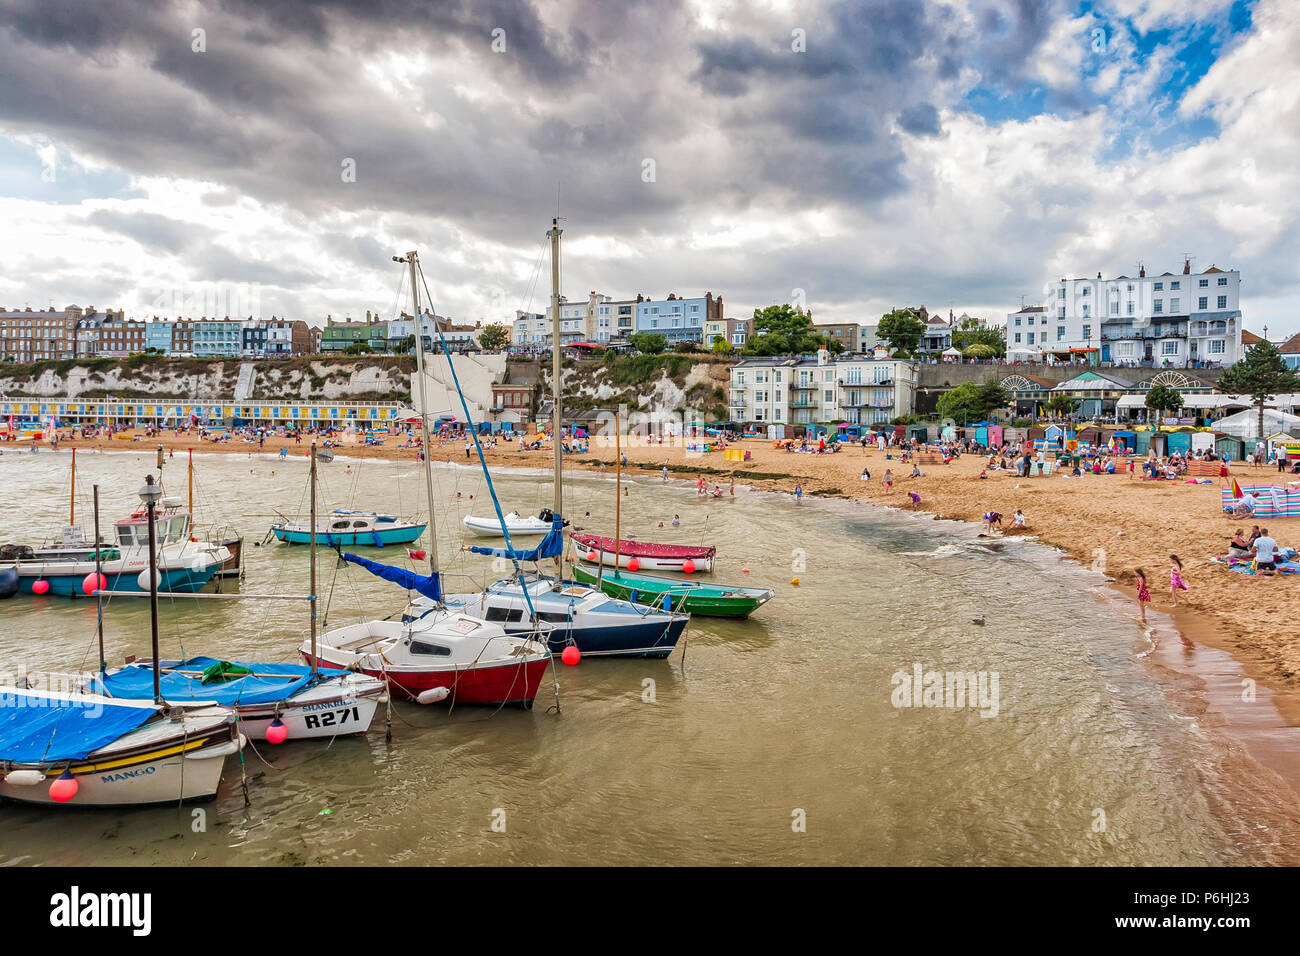 Boats moored in harbour at Viking Bay, Broadstairs, Kent, England Stock Photo